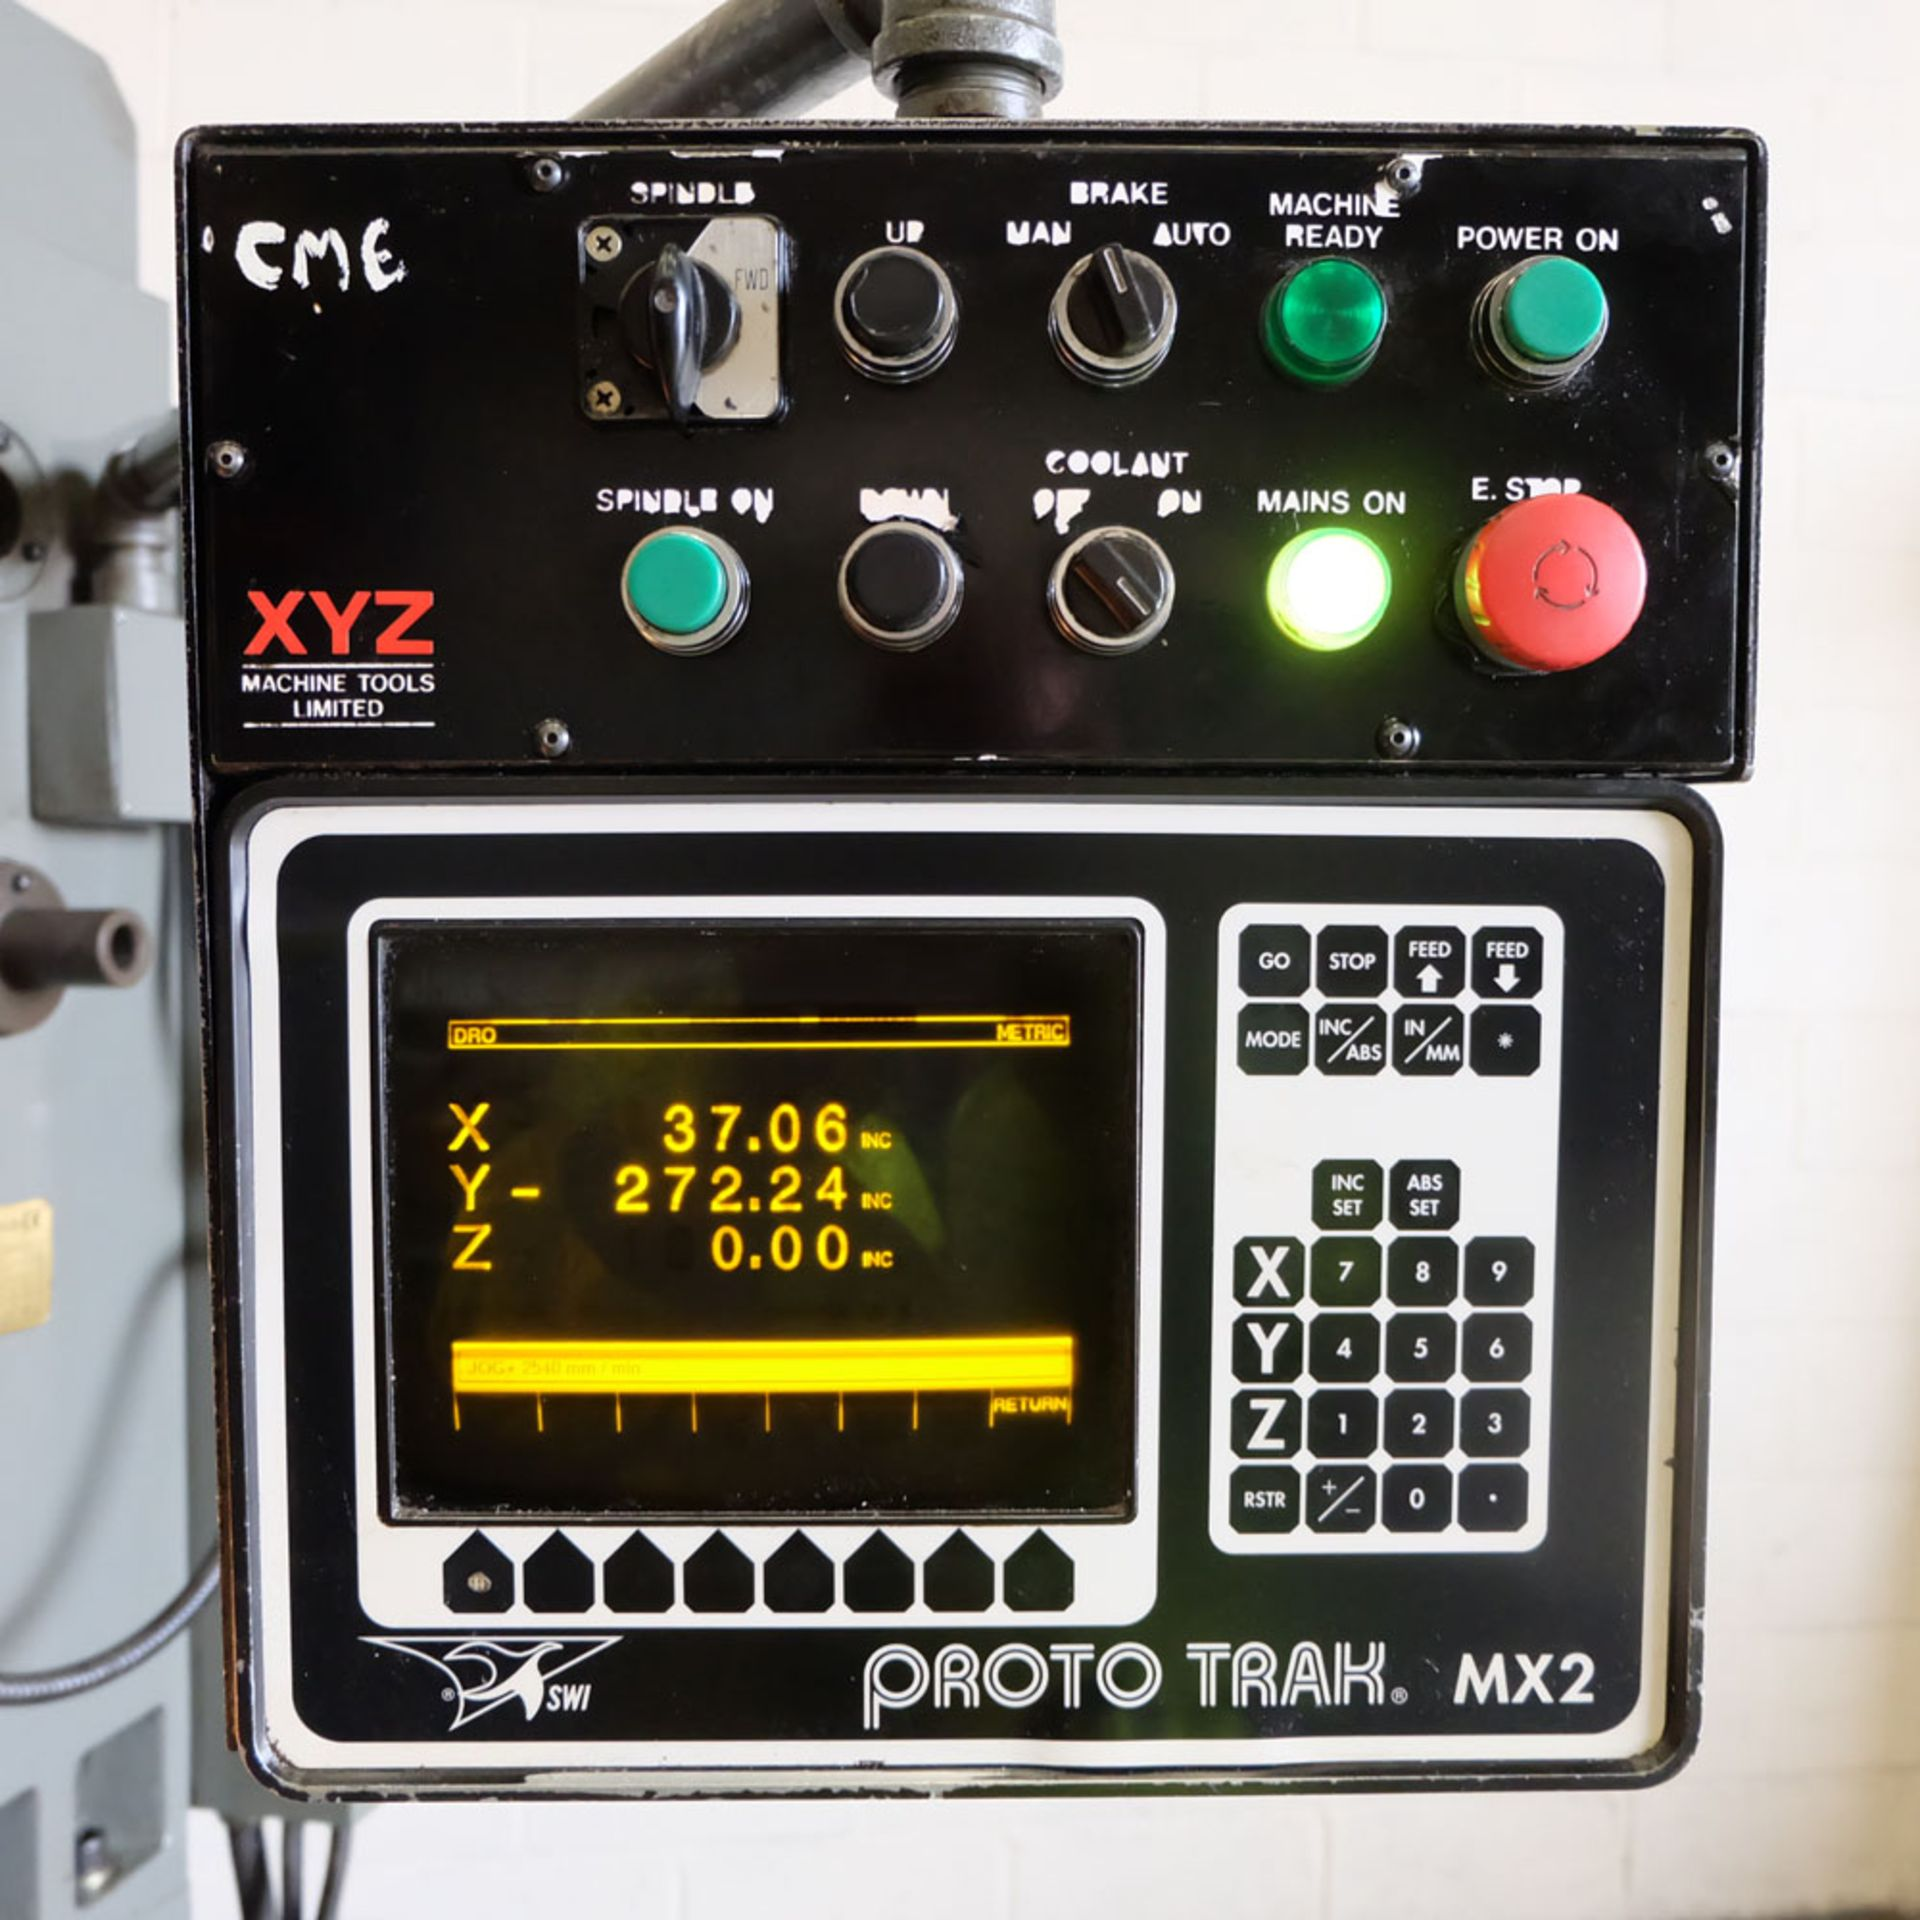 XYZ 4000 Proto Trak MX2 2 Axis CNC Bed Milling Machine. Table Size: 1480mm x 360mm. Taper 40 ISO. - Image 6 of 6